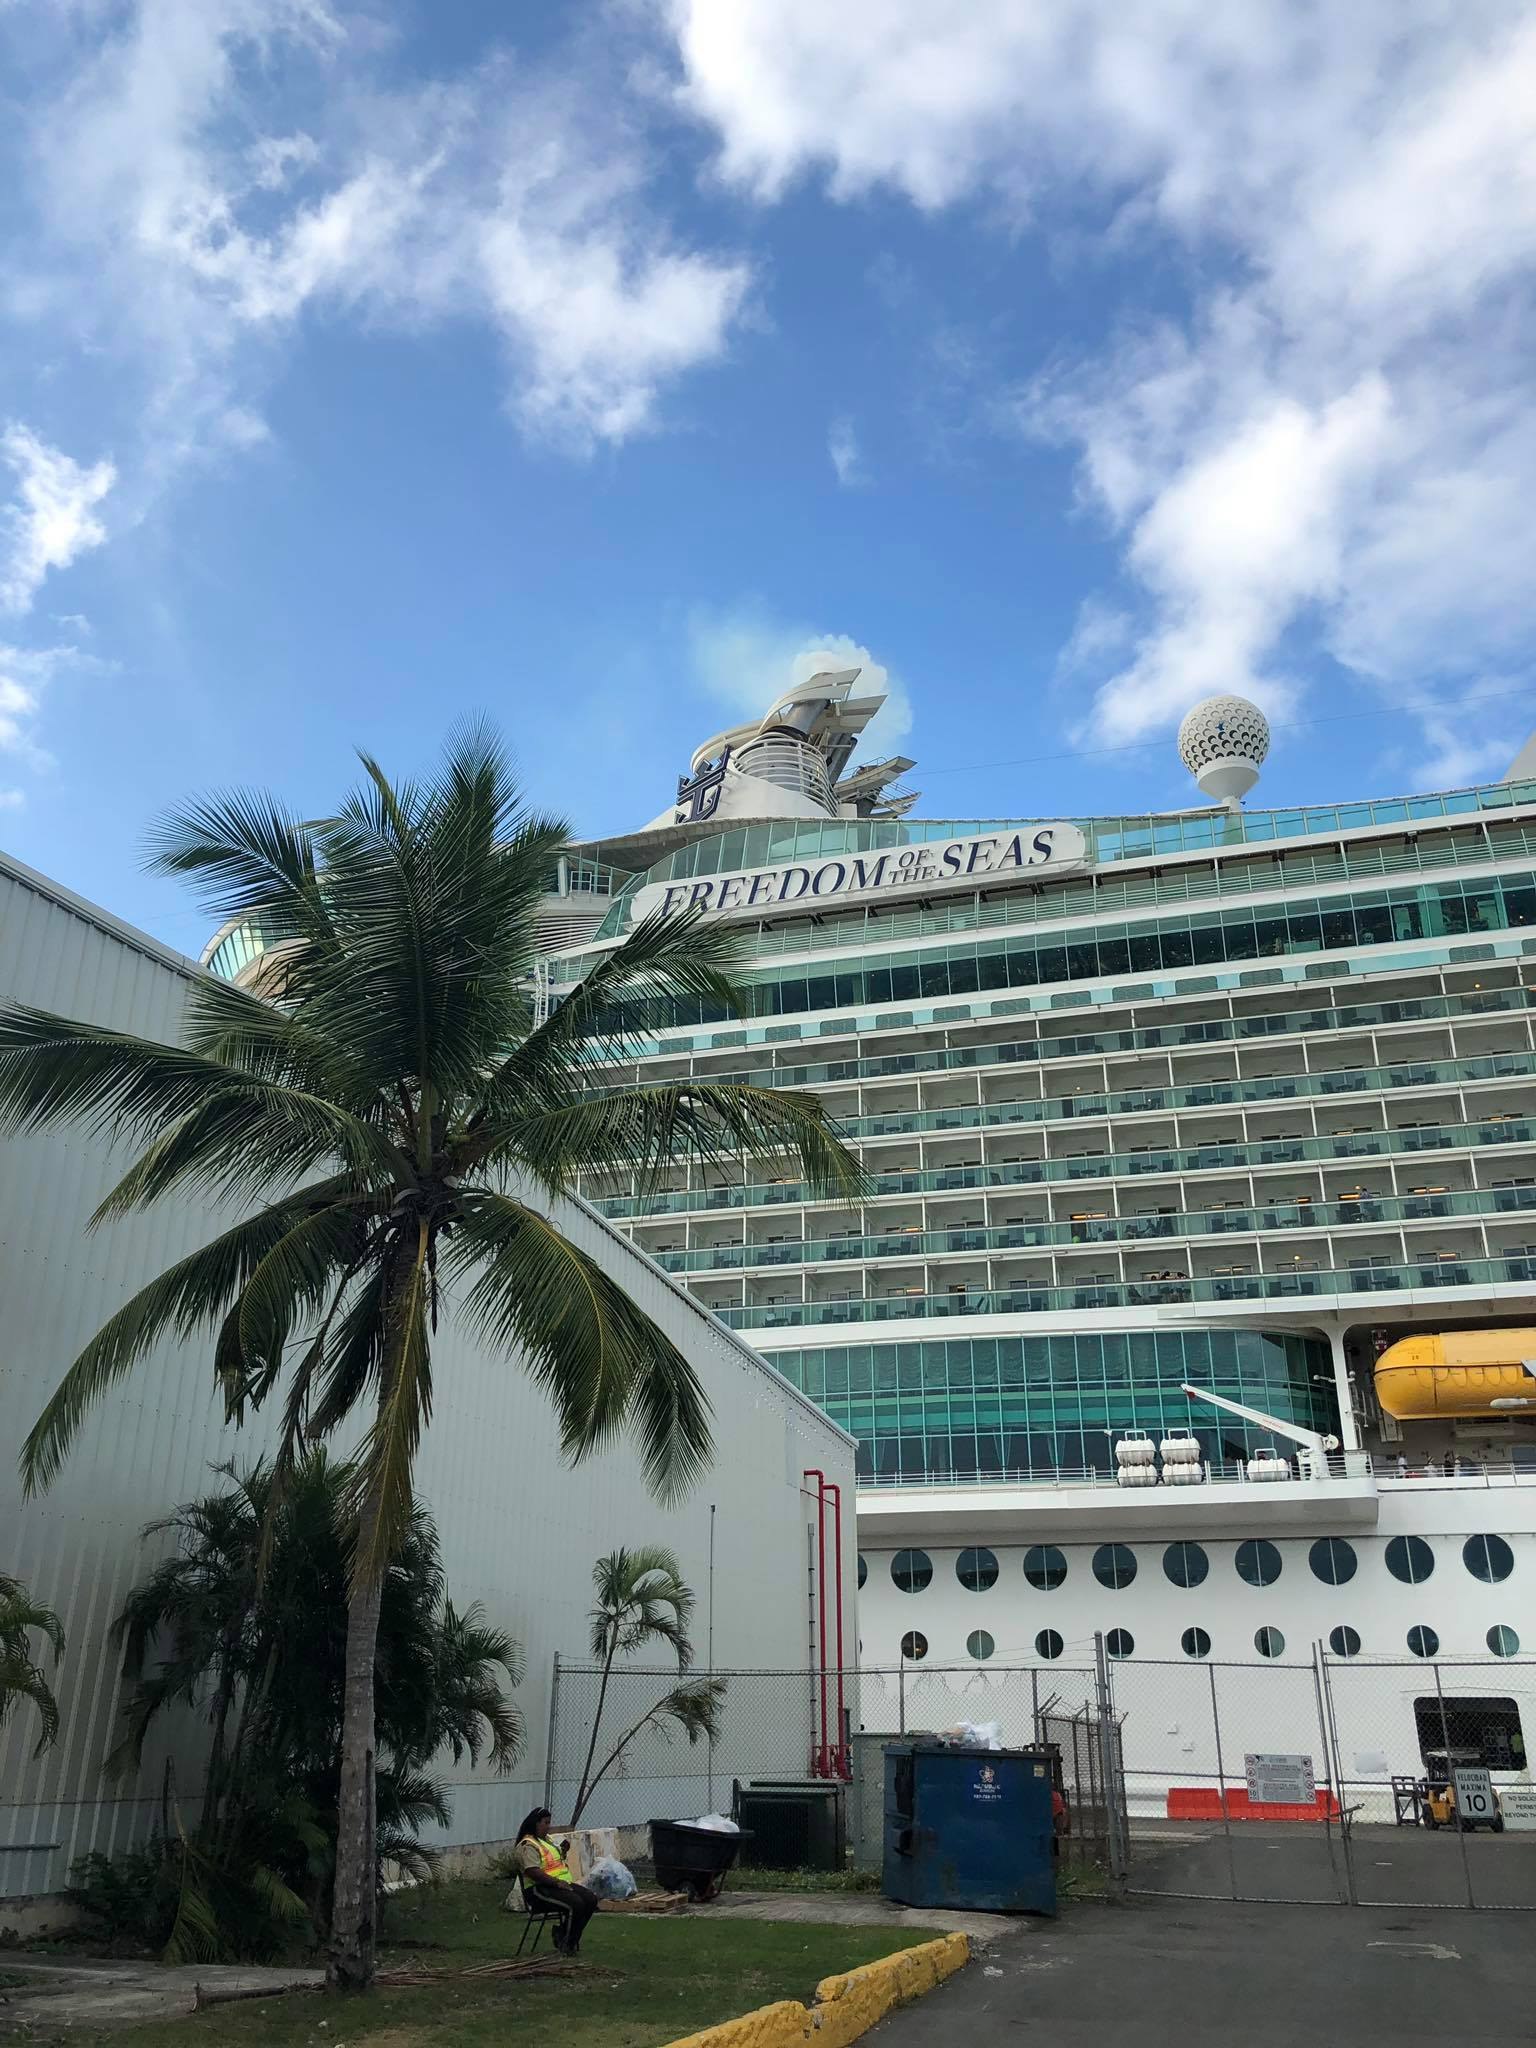 Kach Solo Travels in 2019  7-day Eastern & Southern Caribbean cruise with Royal Caribbean 4.jpg